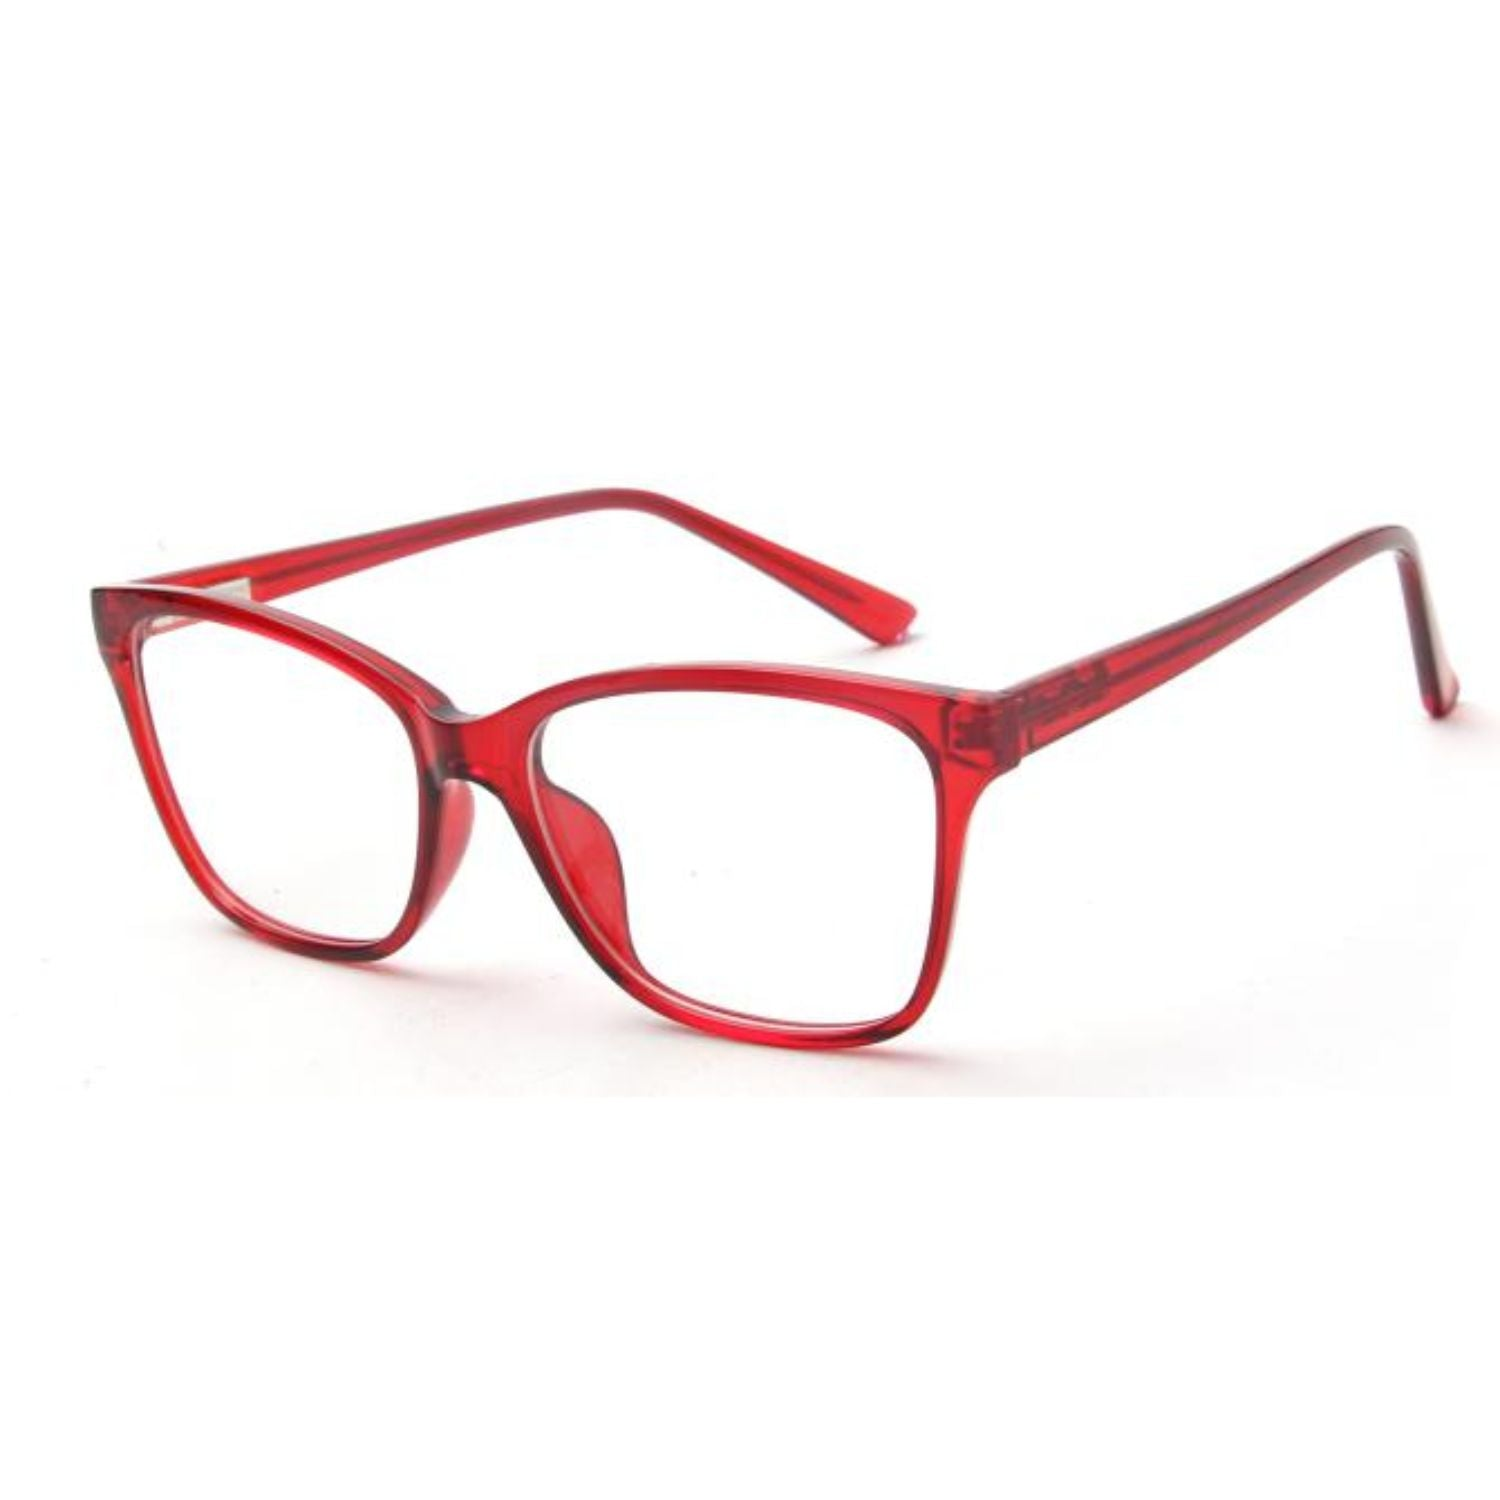 OTR30 - Women Fashion Cat Eye Optical Eyeglasses - Iris Fashion Inc. | Wholesale Sunglasses and Glasses